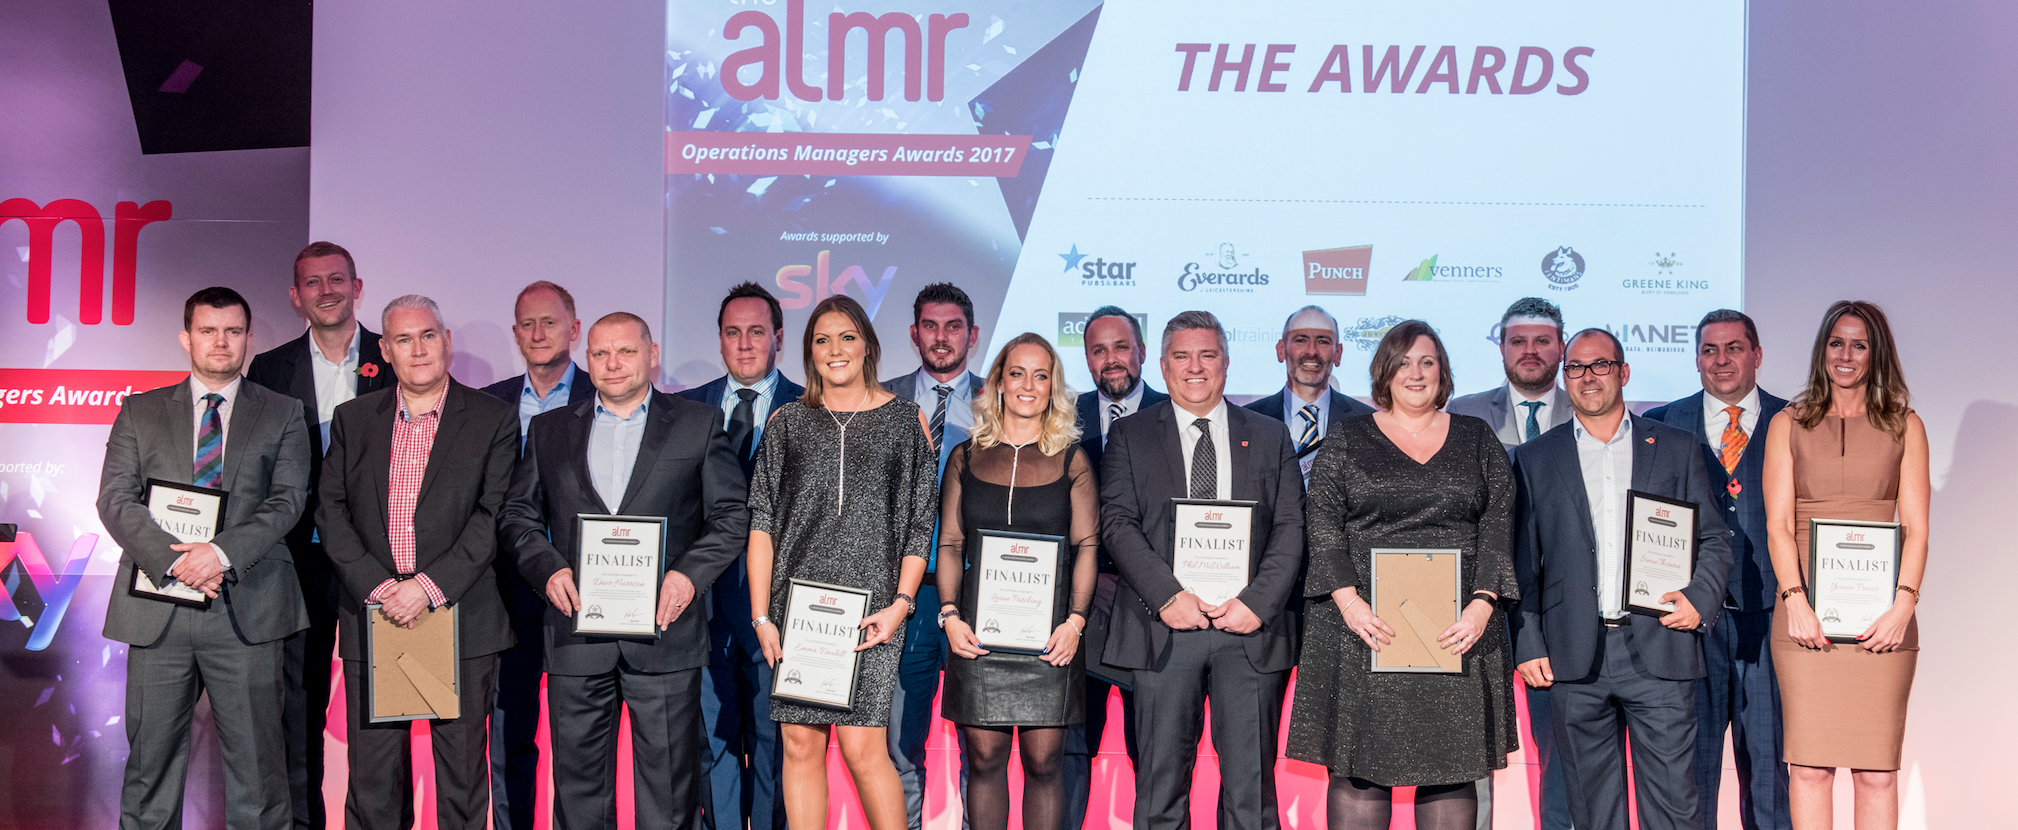 ALMR Ops Managers Awards 2017